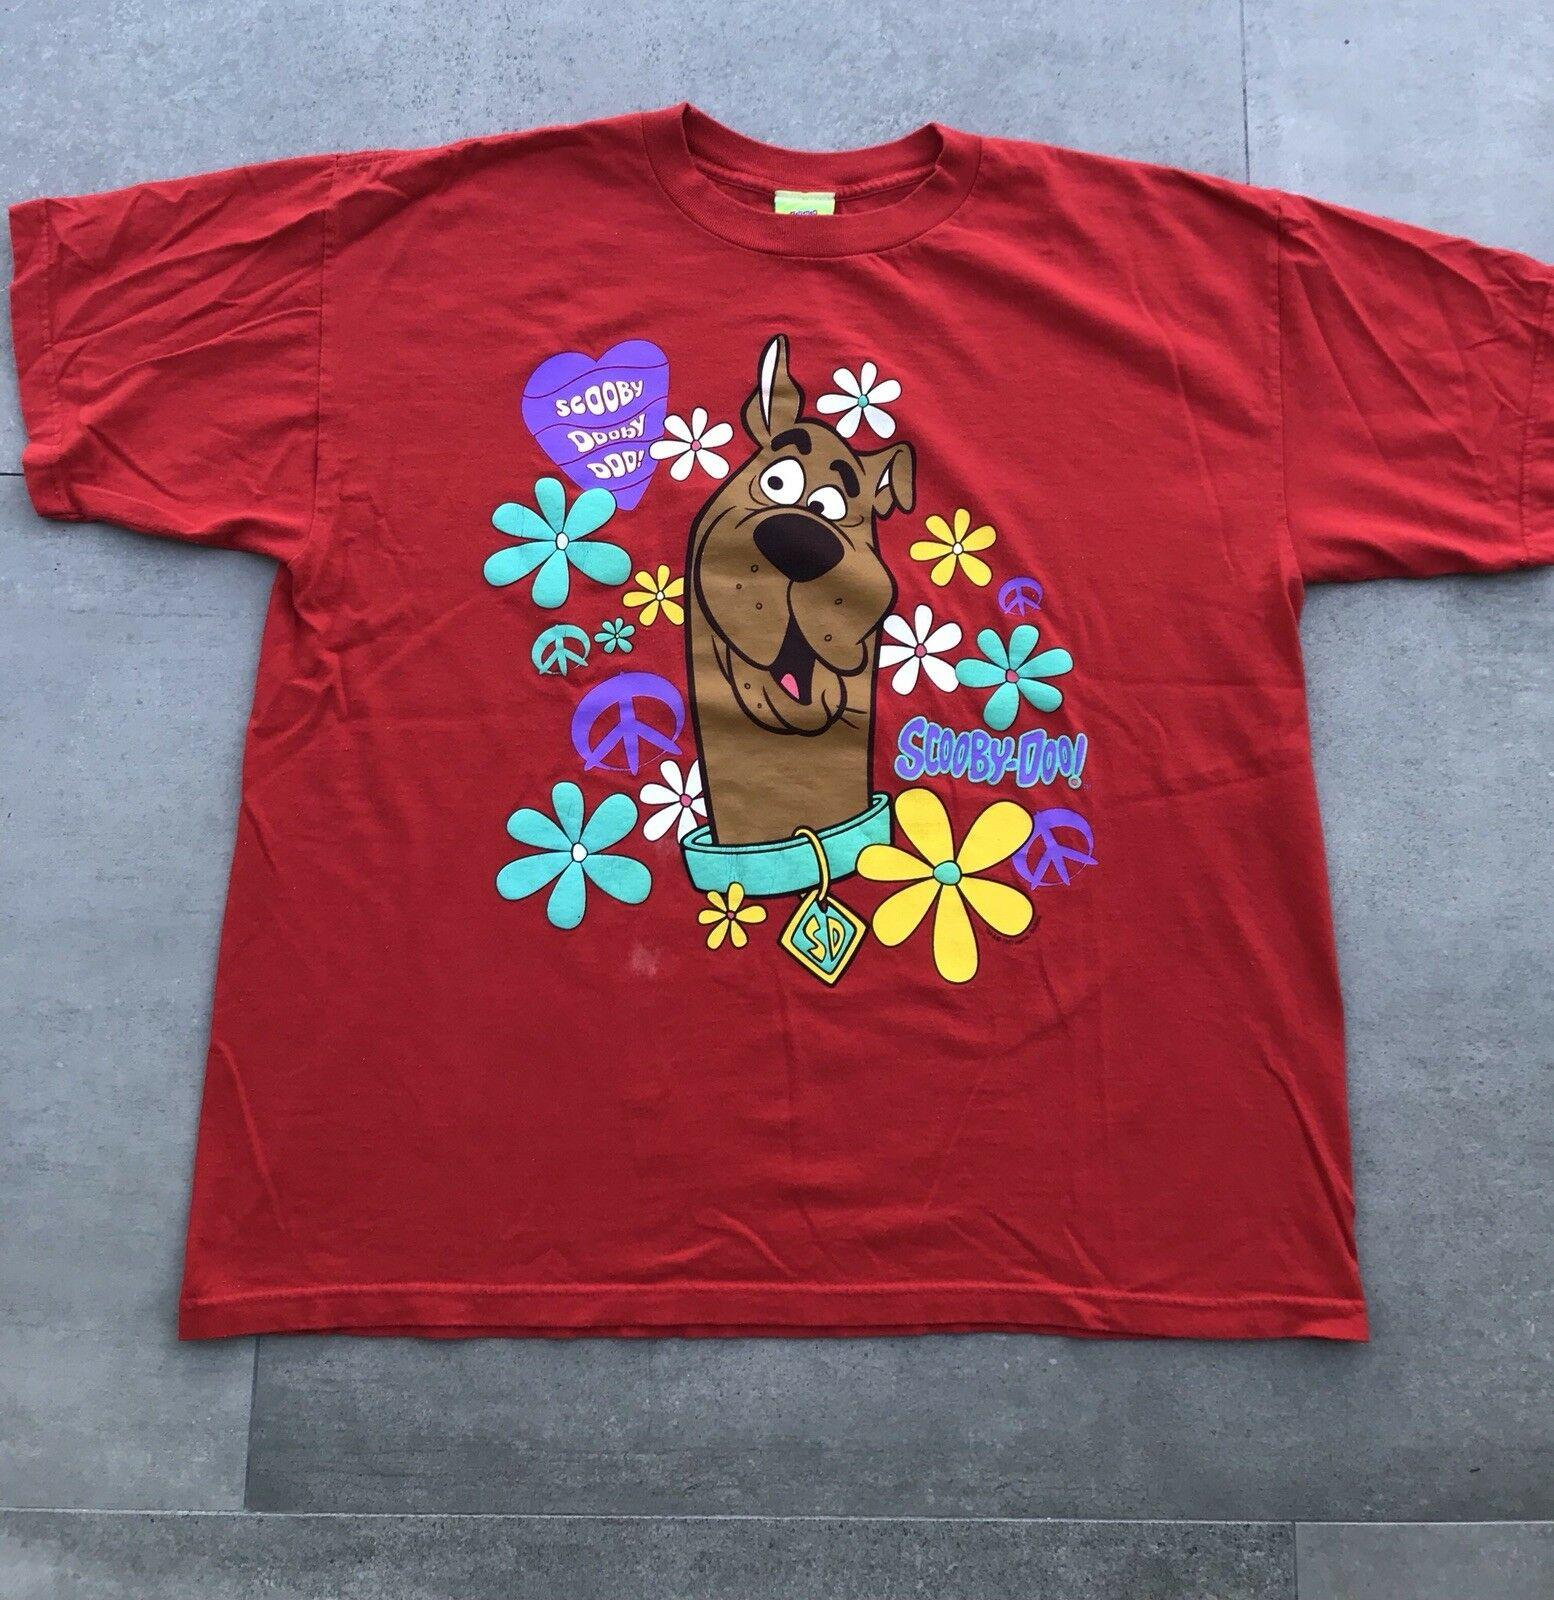 6f6ab970585 Vintage 1997 Scooby Doo T Shirt 90s Cartoon Network Red Trippy Funny Unisex  Casual Top Mens Shirt Printed Shirts From Paystoretees